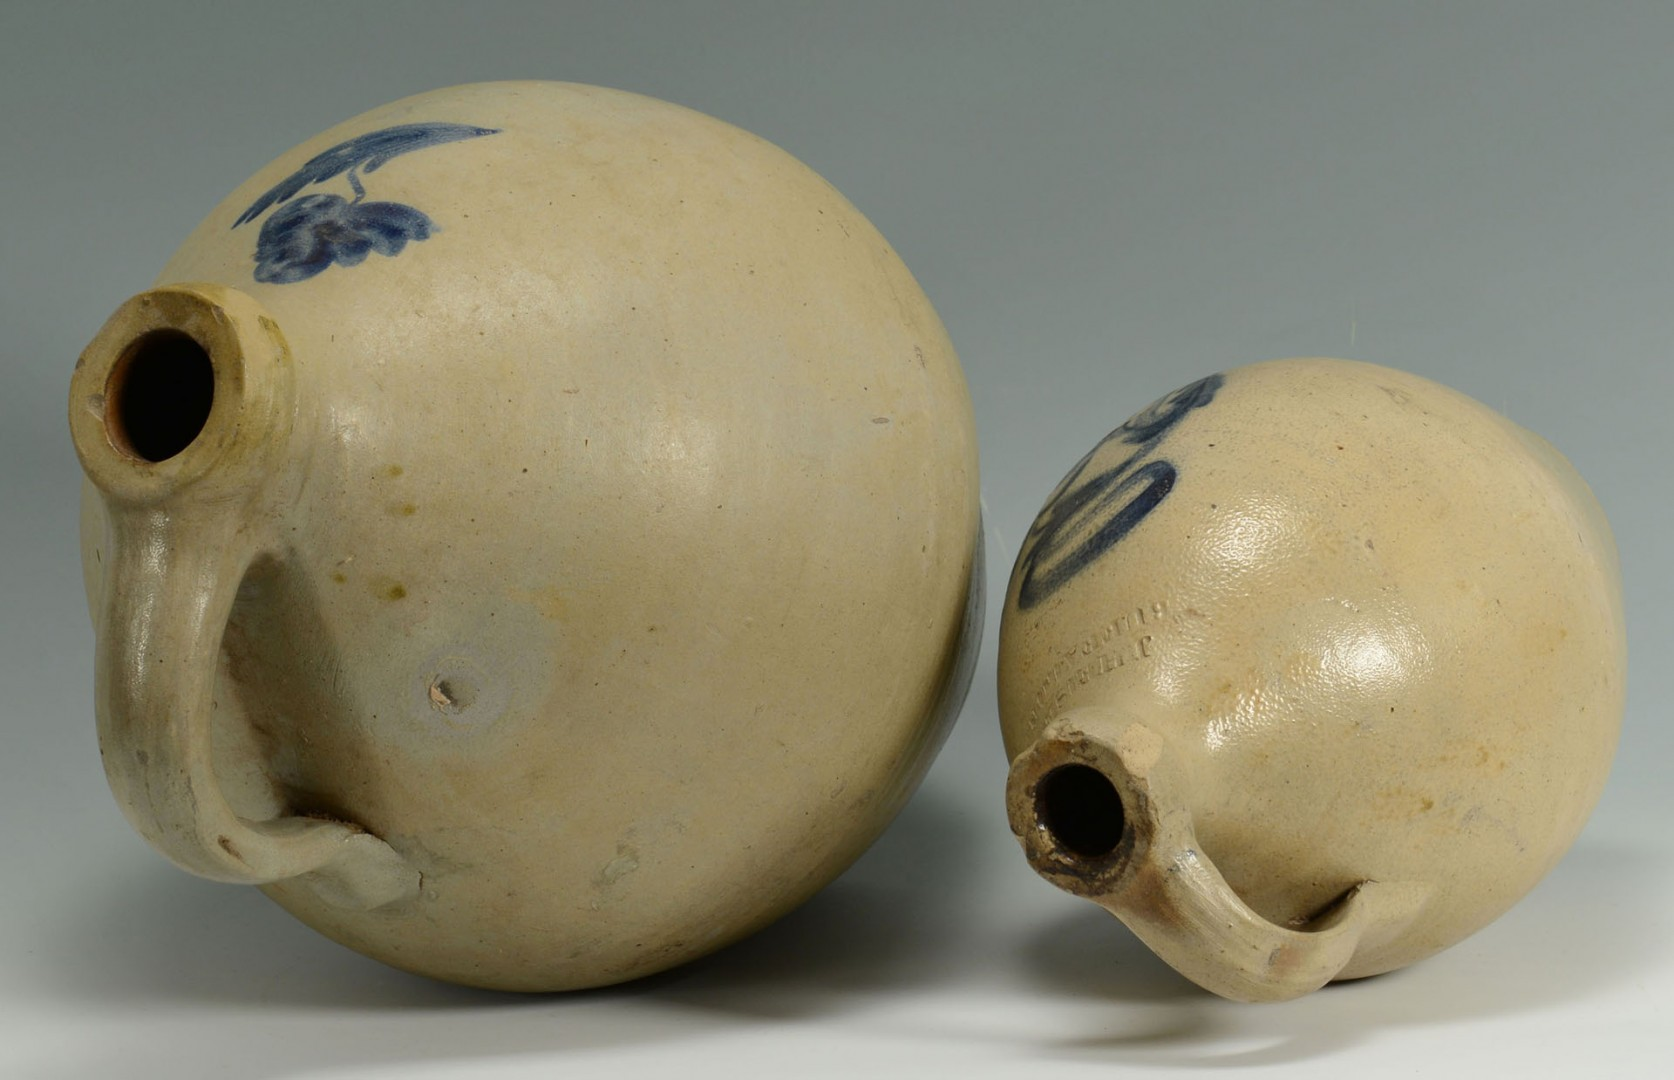 2 Cobalt Decorated Ovoid Stoneware Jugs, NE